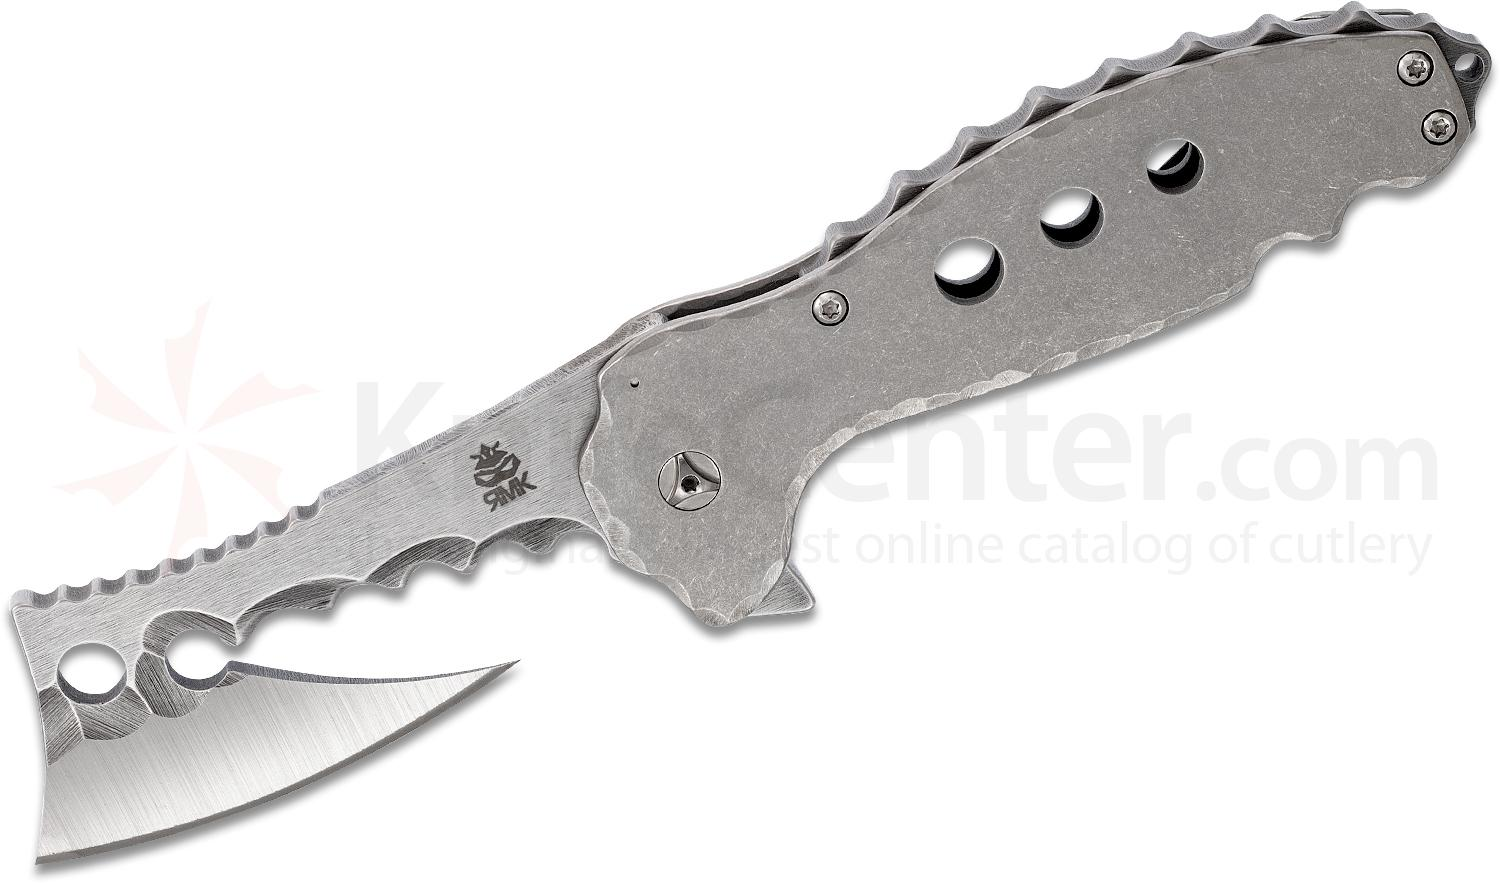 RichMade Knives Custom Large Ratchet Flipper Knife 4.125 inch D2 Satin Blade, Stonewashed Milled Titanium Handles